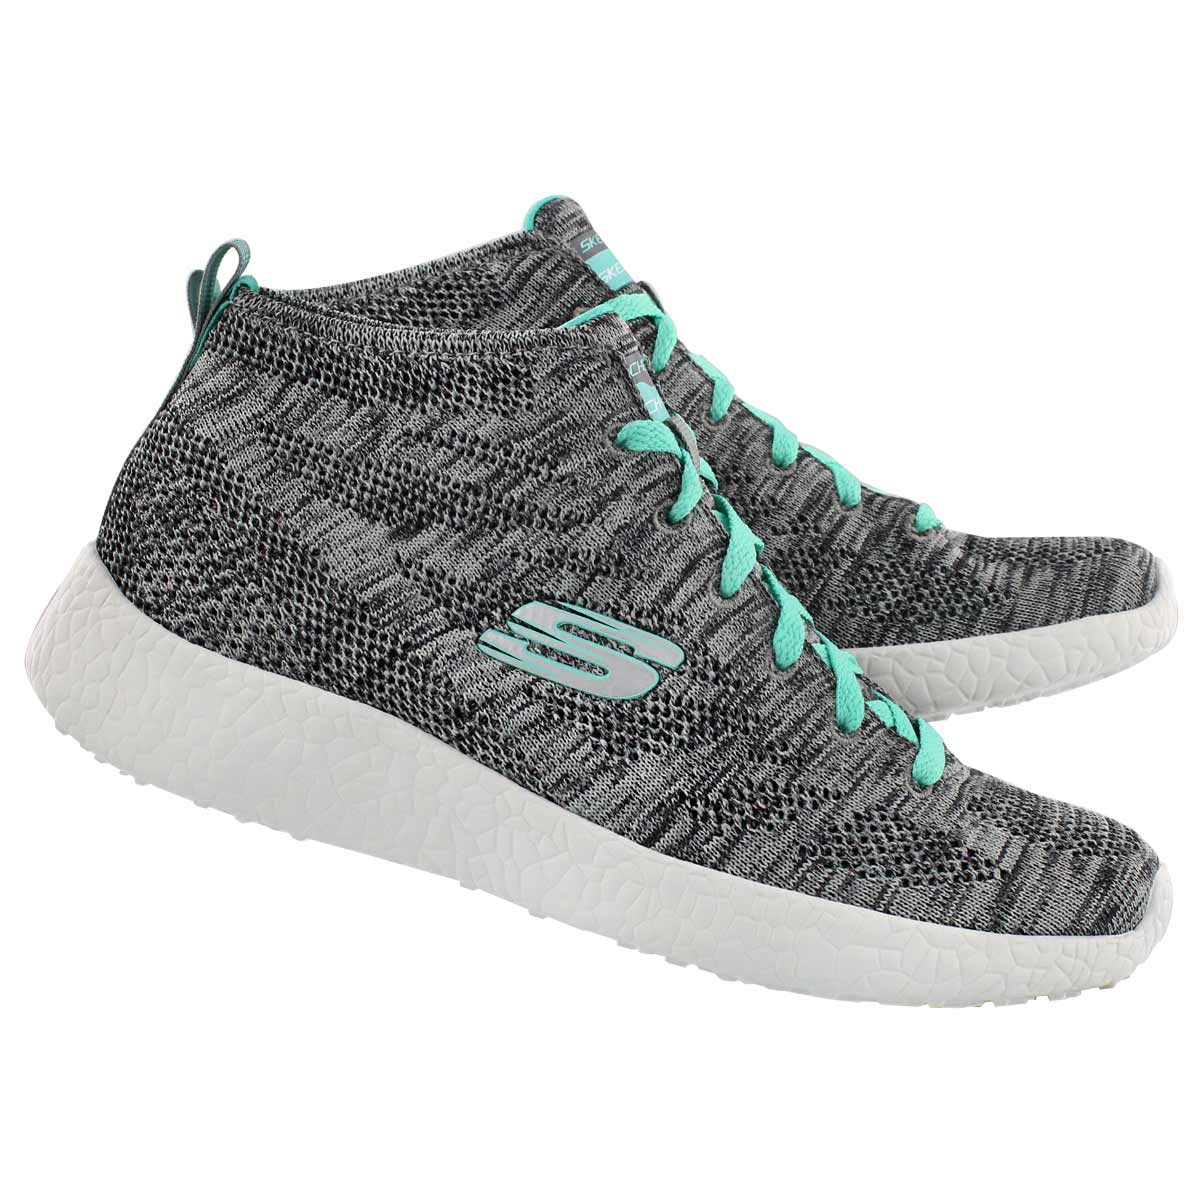 Lds Divergent gry chukka sneaker